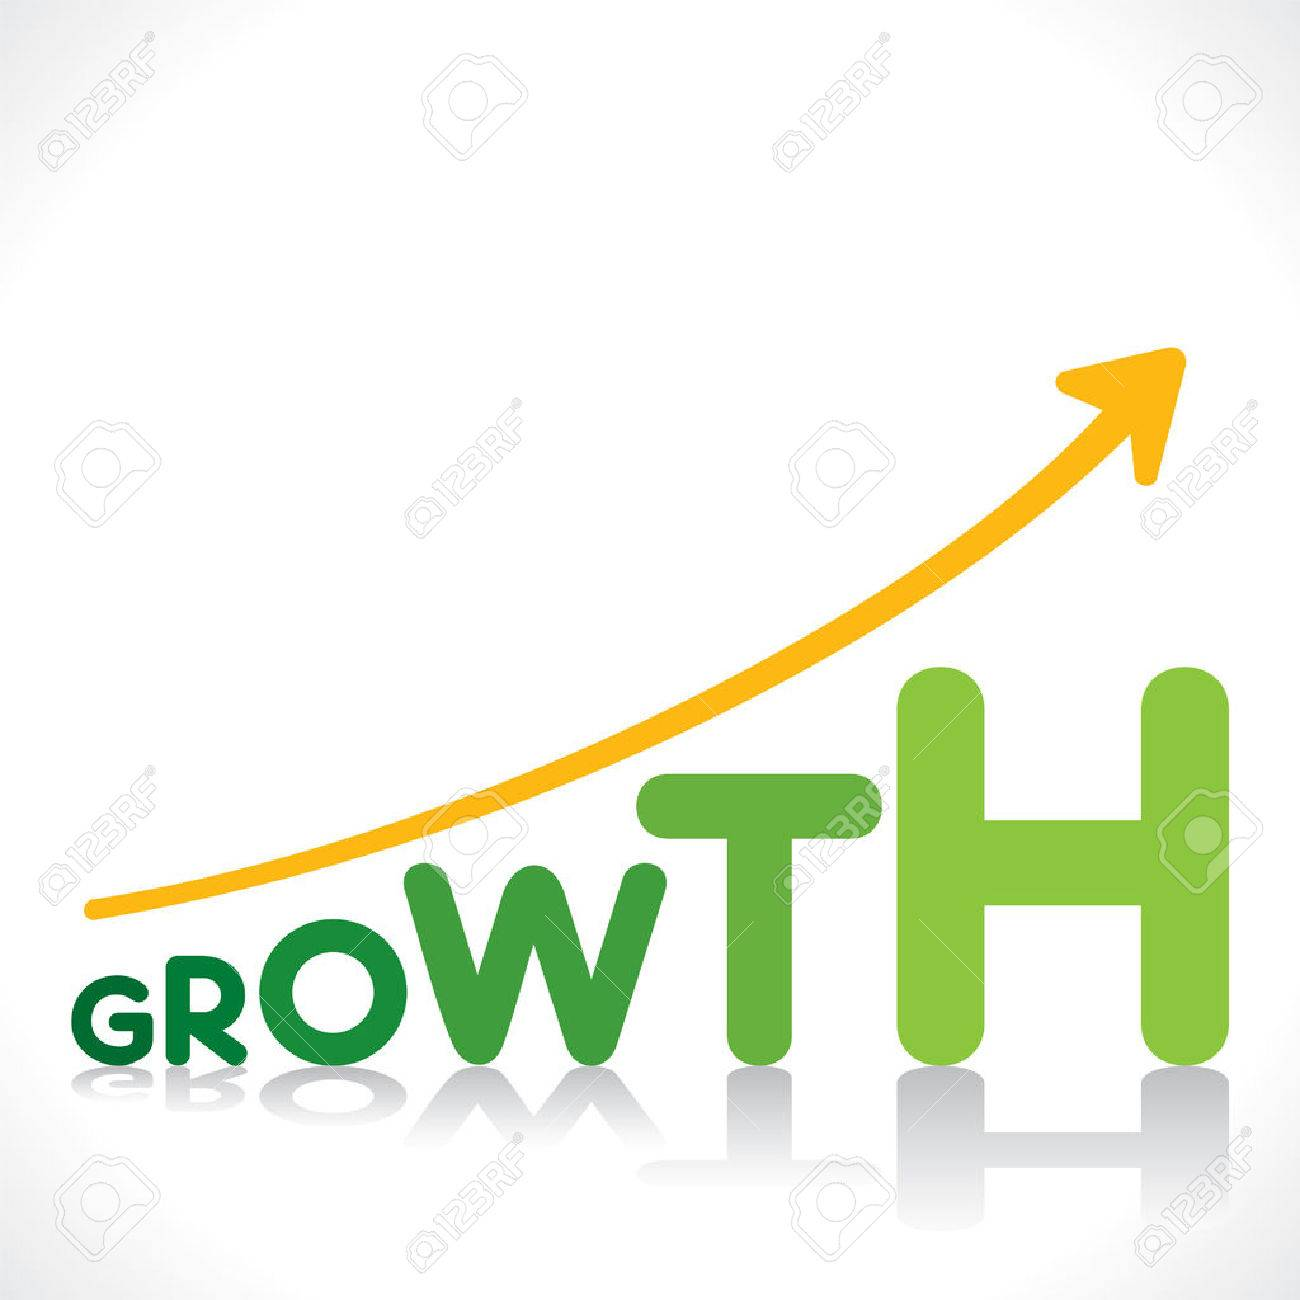 Creative Business Growth Graphics Design With Growth Word Design Concept Stock Vector 28911988